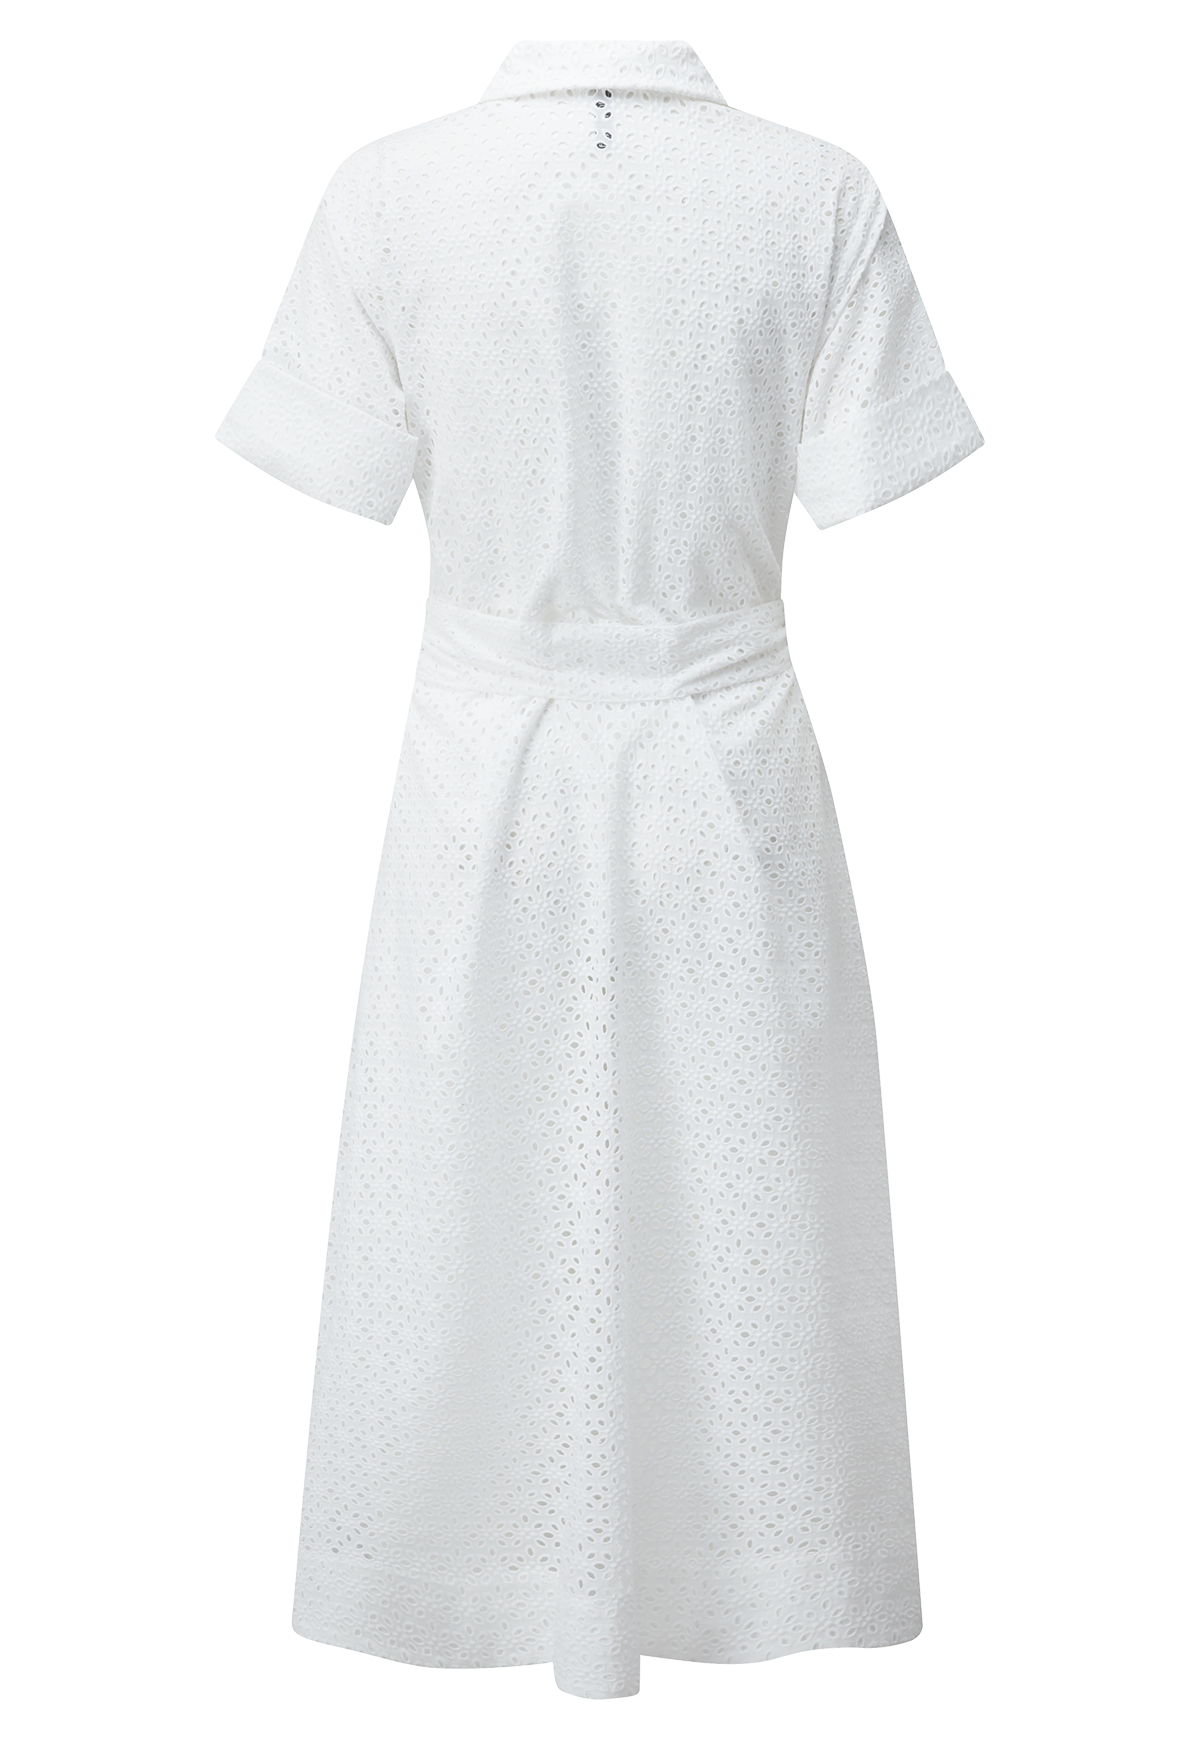 WHITE EYELET SHIRT DRESS